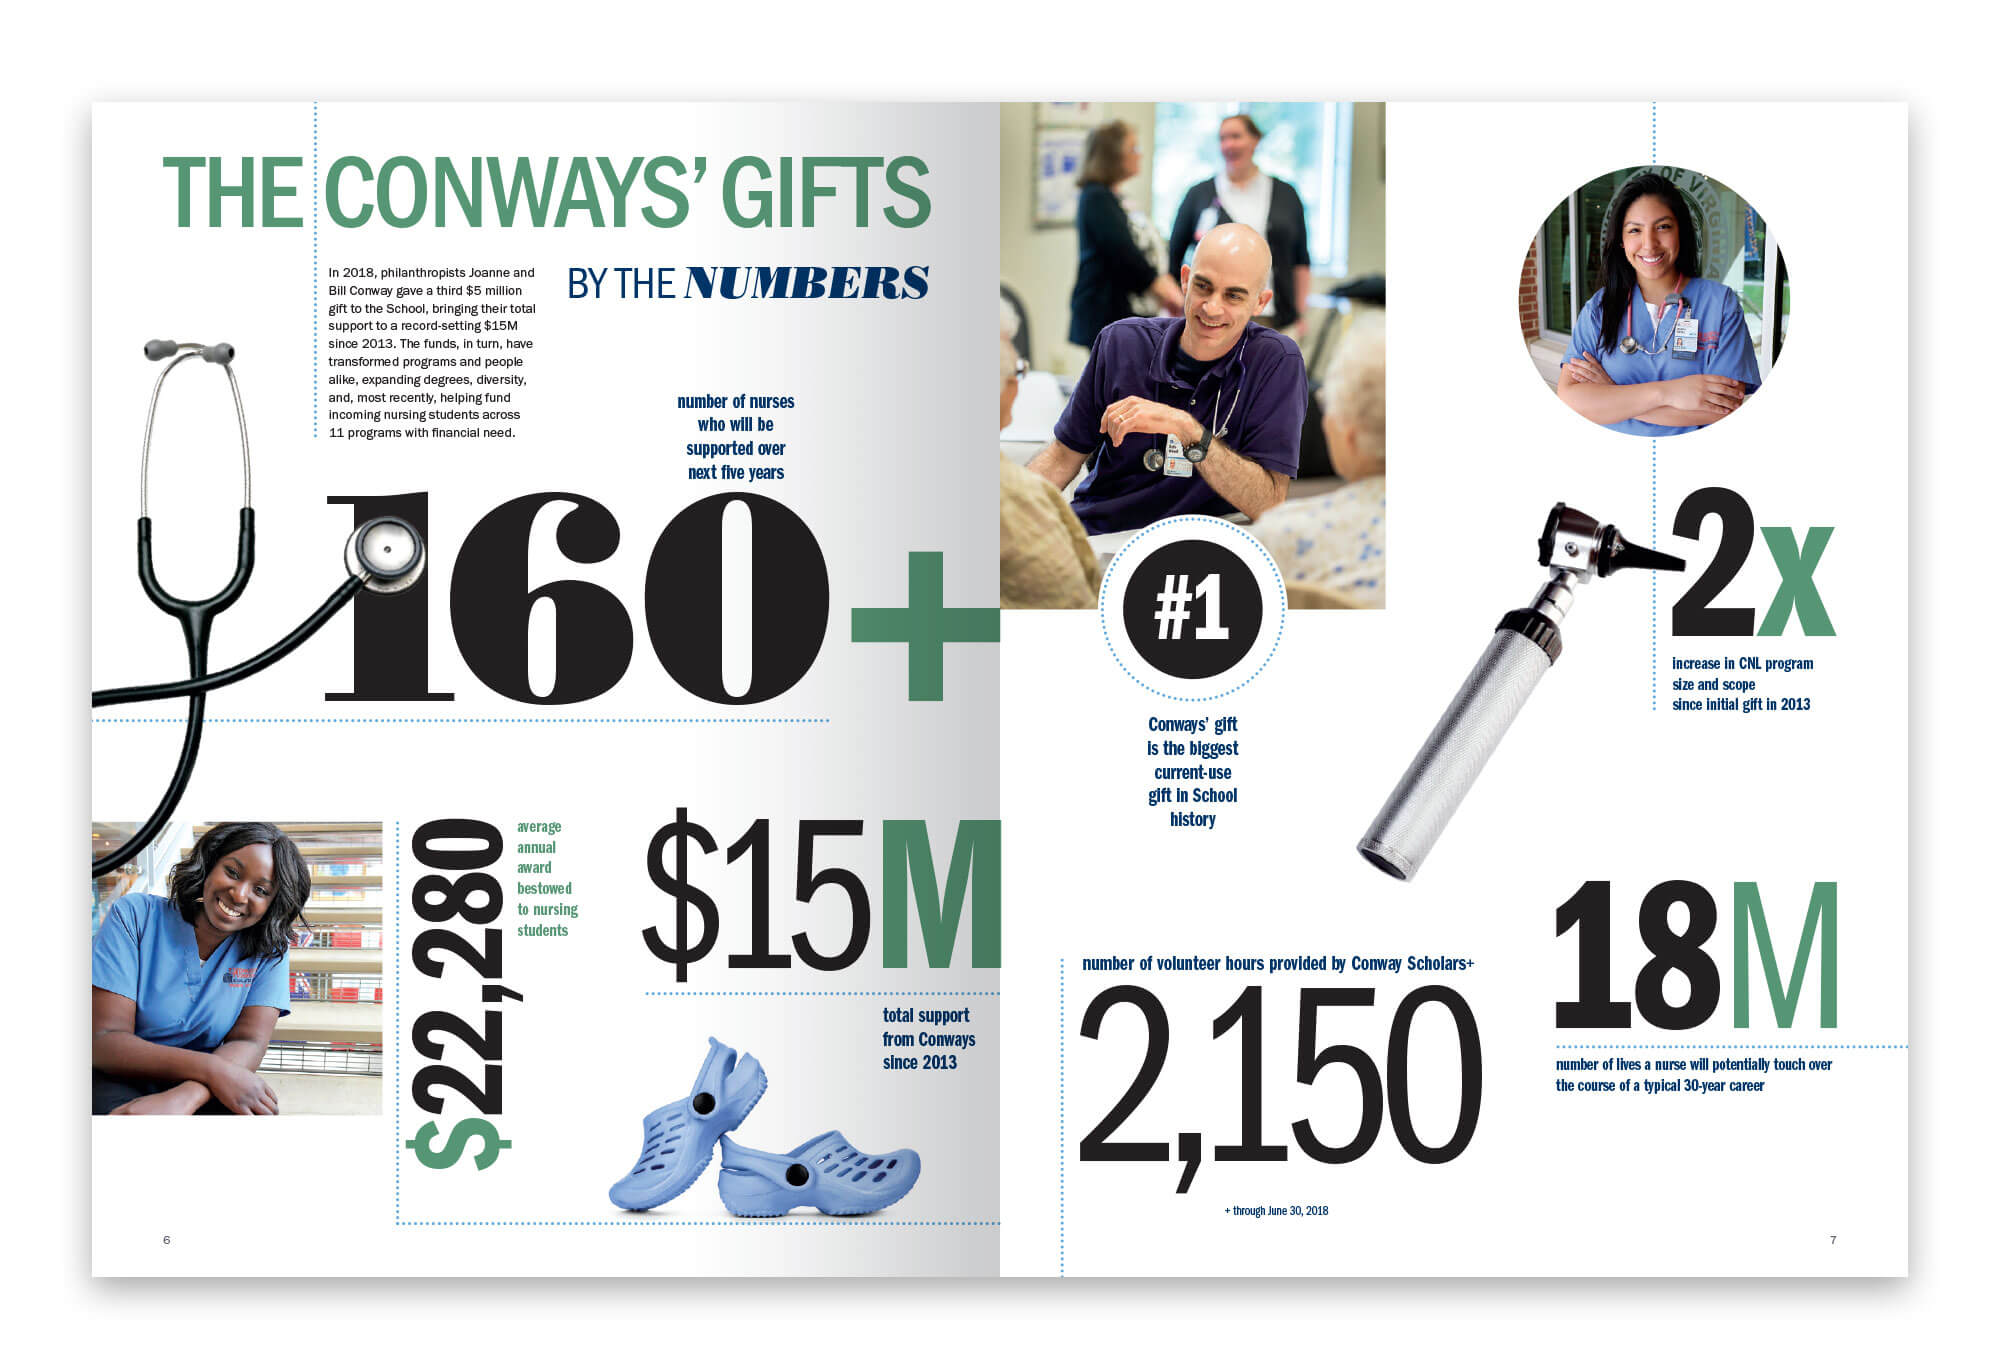 The Conway's Gifts by the Numbers